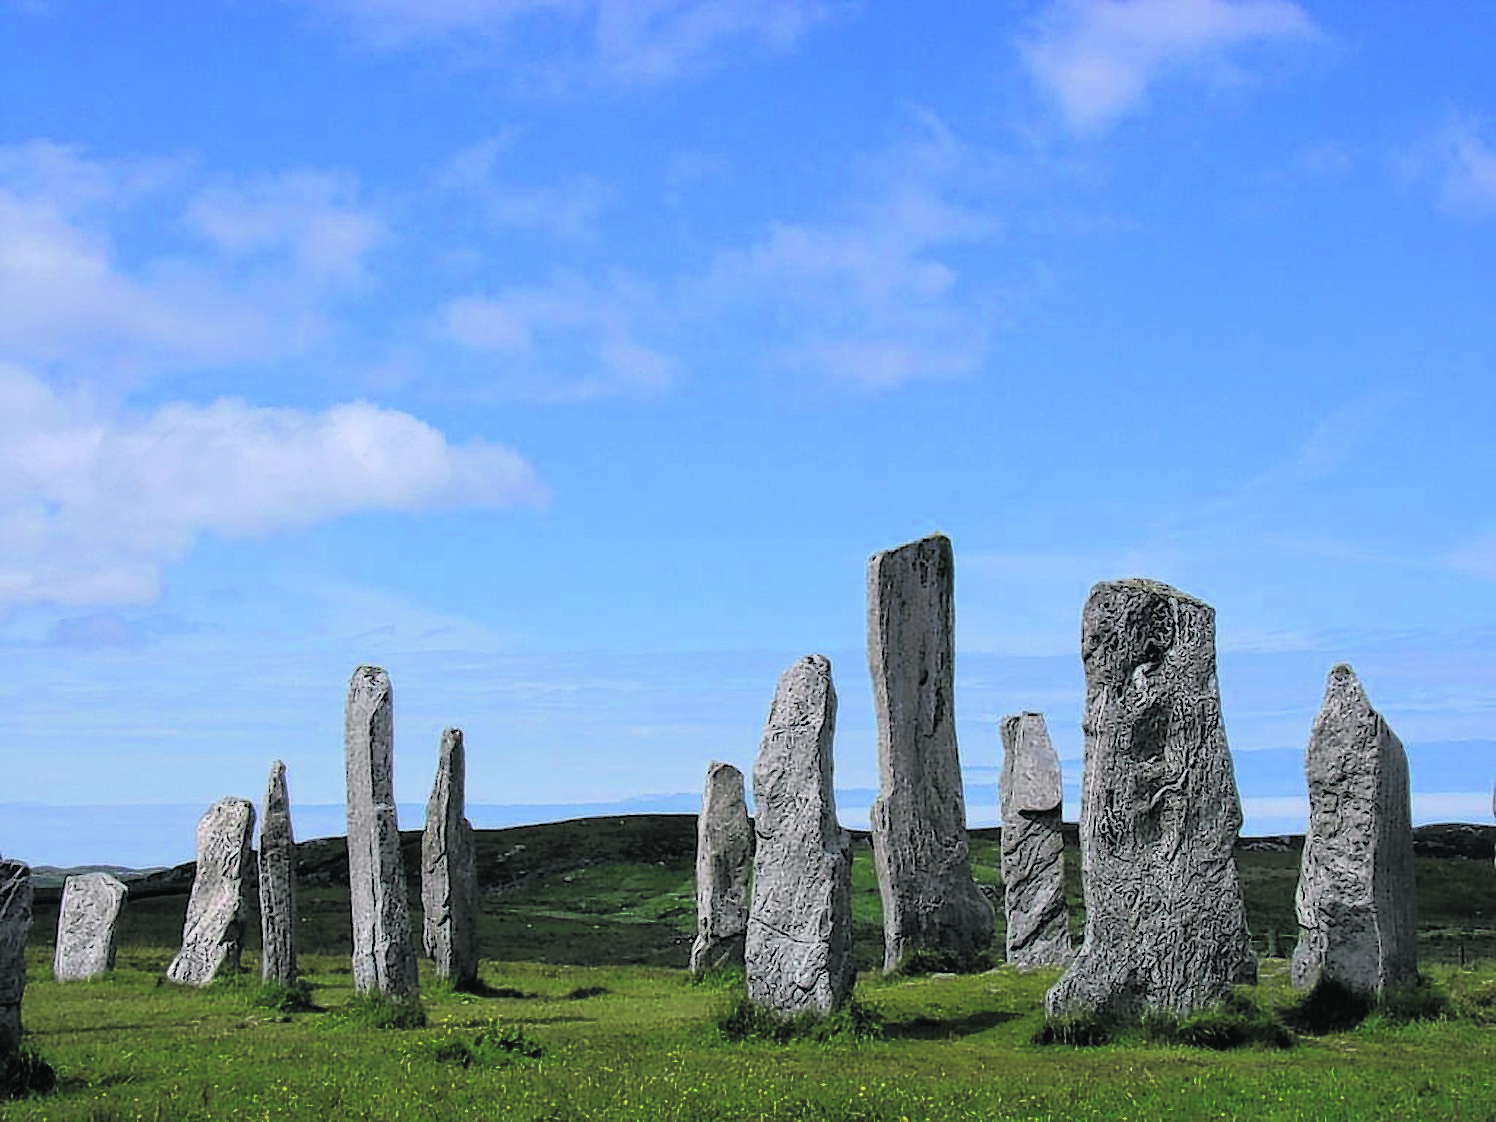 The Callanish Standing Stones on Lewis